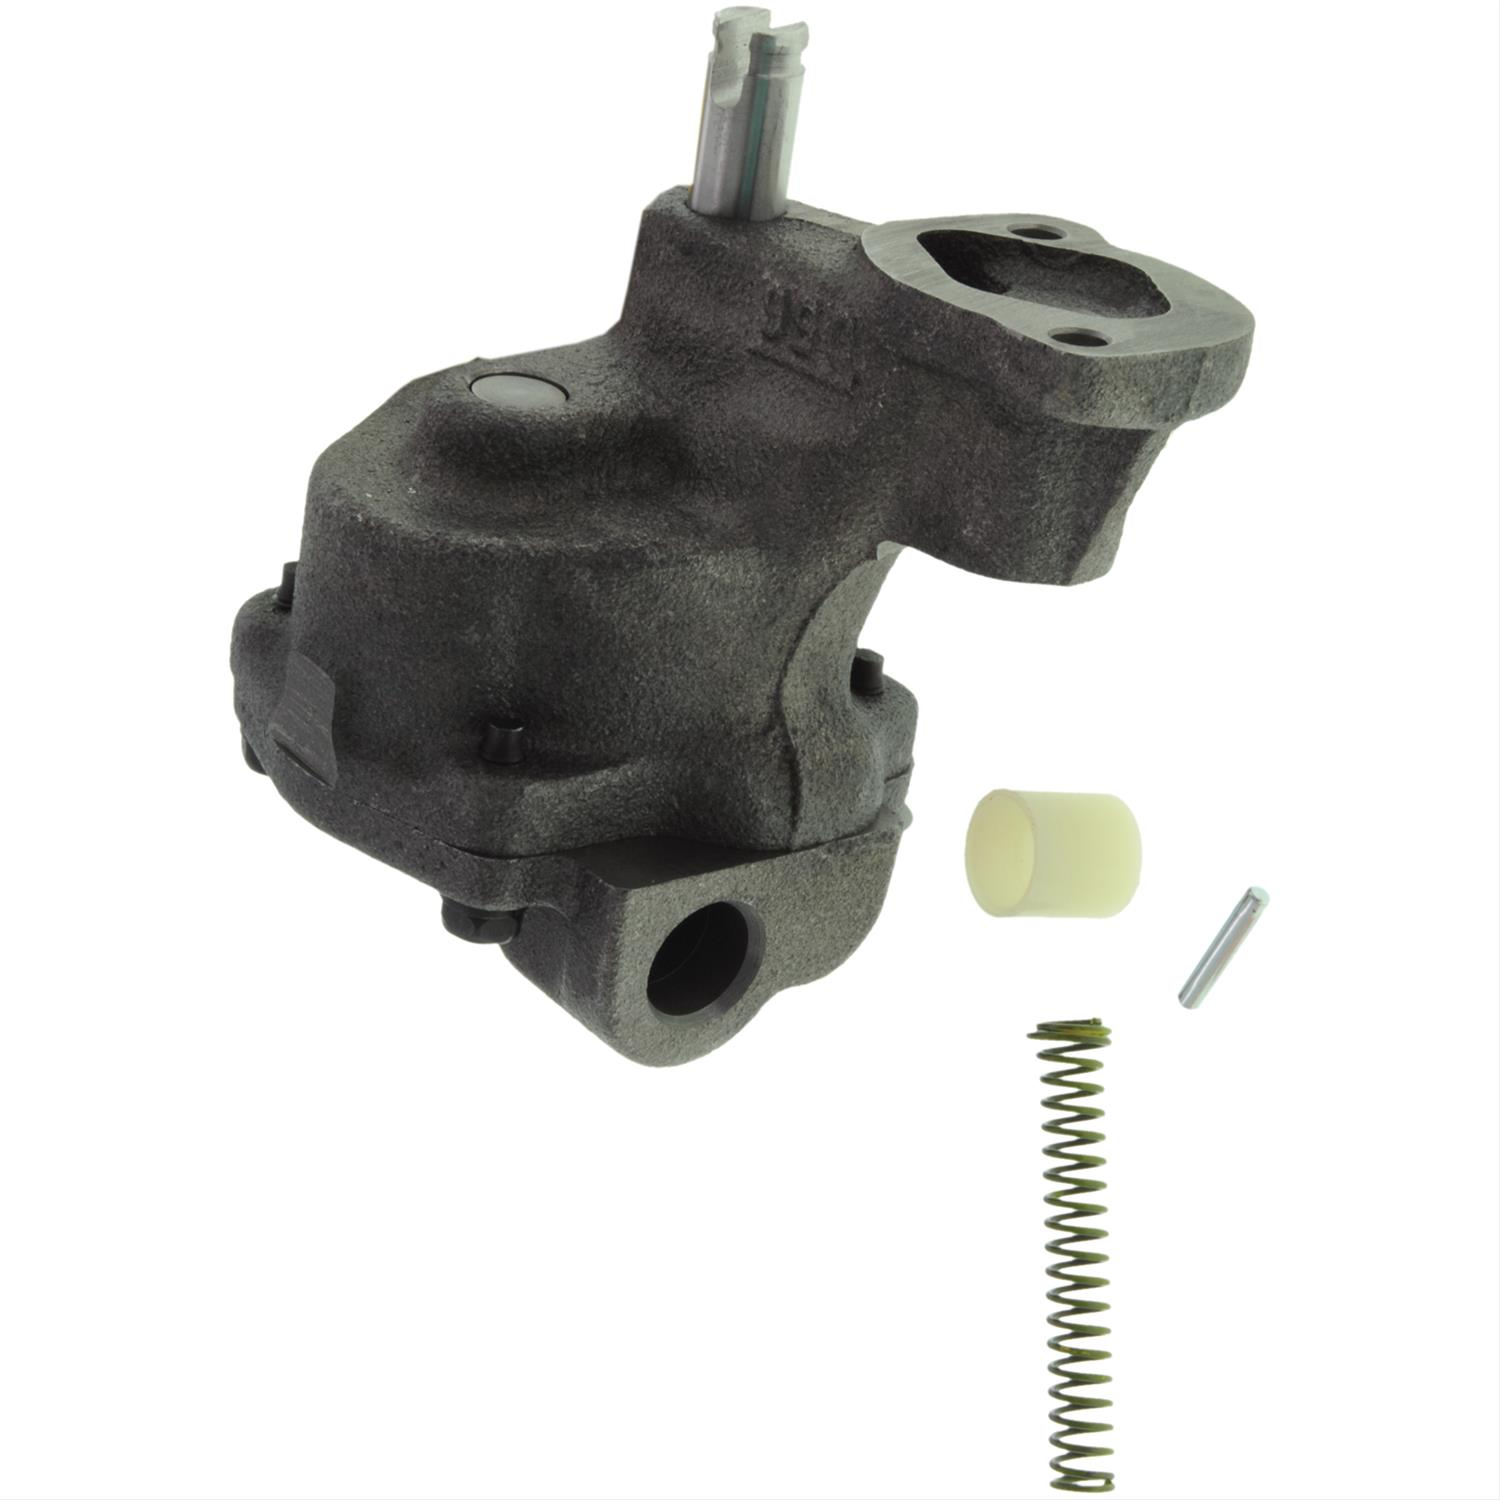 Melling Oil Pumps M 55a Free Shipping On Orders Over 49 At Summit 2012 Dodge Ram Pump Racing